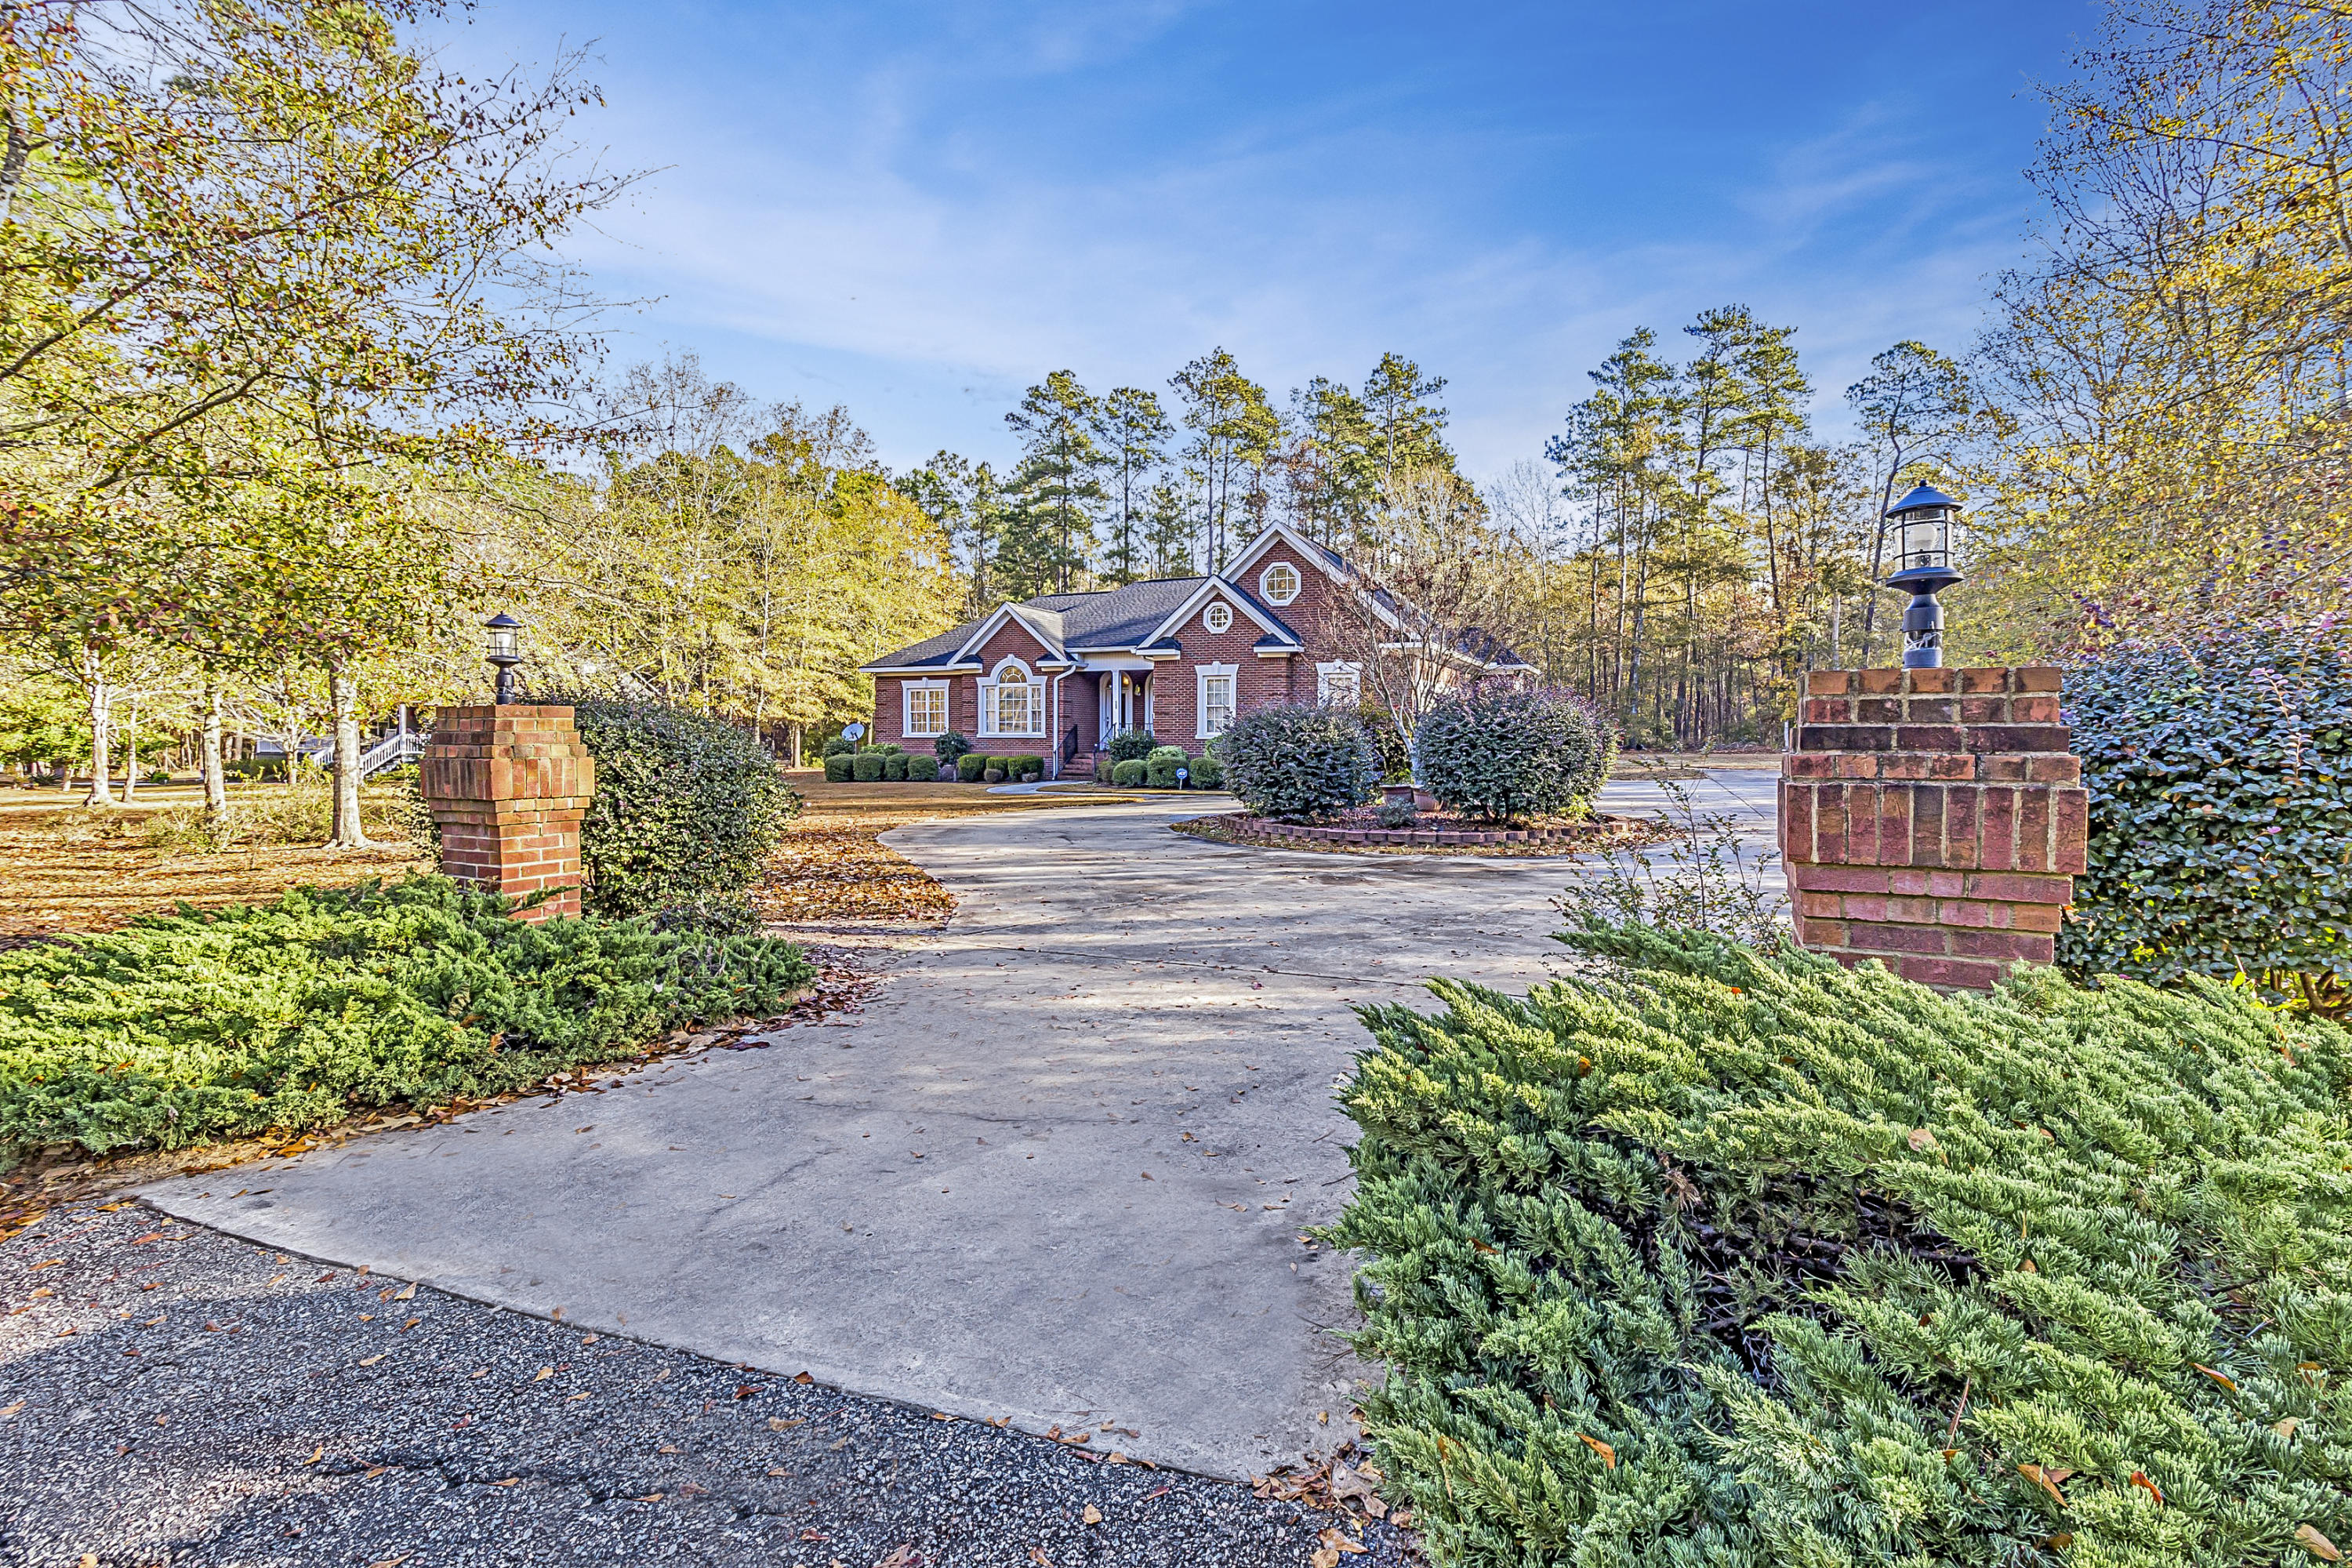 Photo of 369 Pinewood Dr, Santee, SC 29142